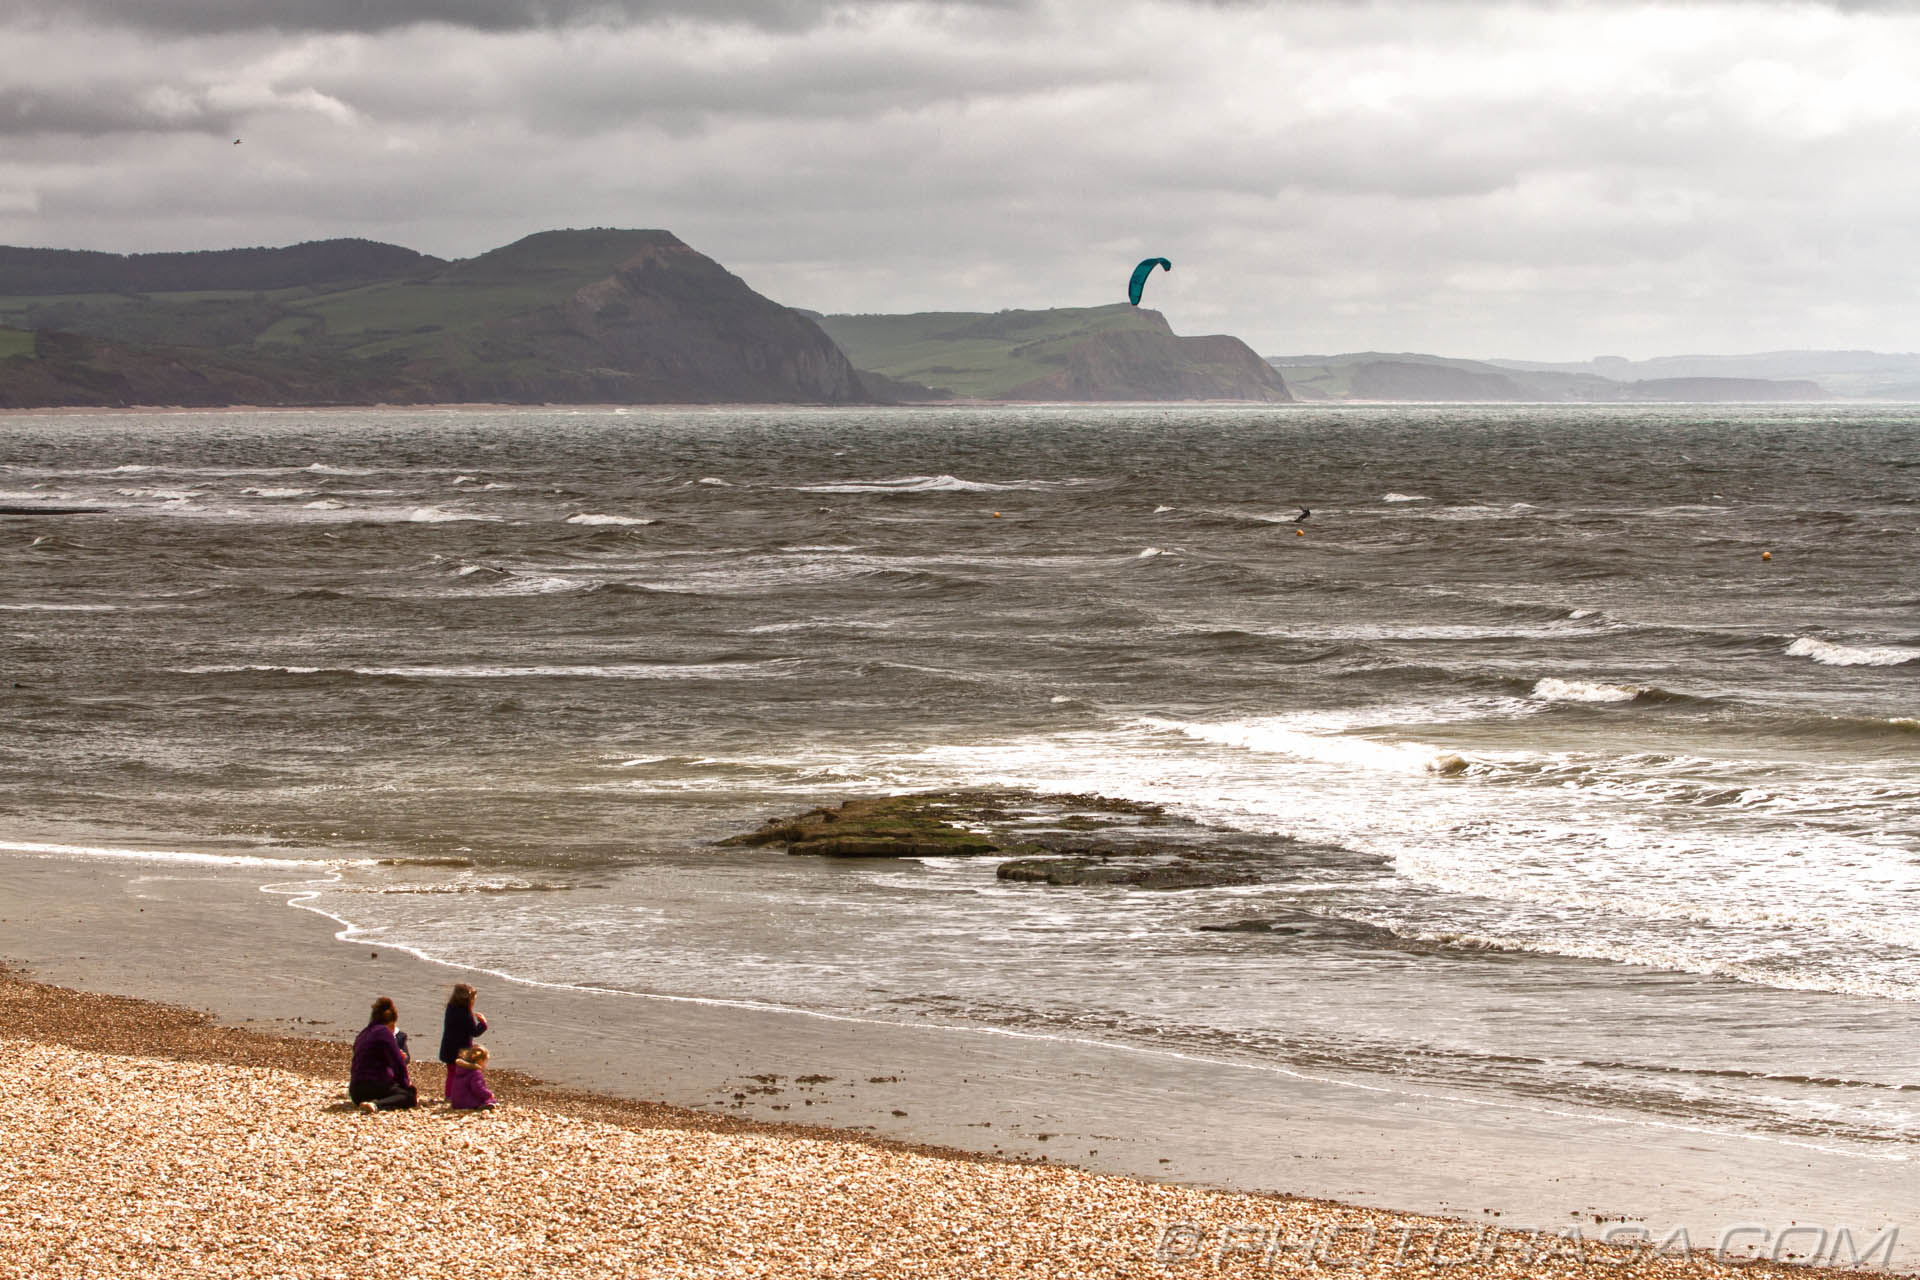 http://photorasa.com/lyme-regis/watching-the-kitesurfer-at-lyme-regis/